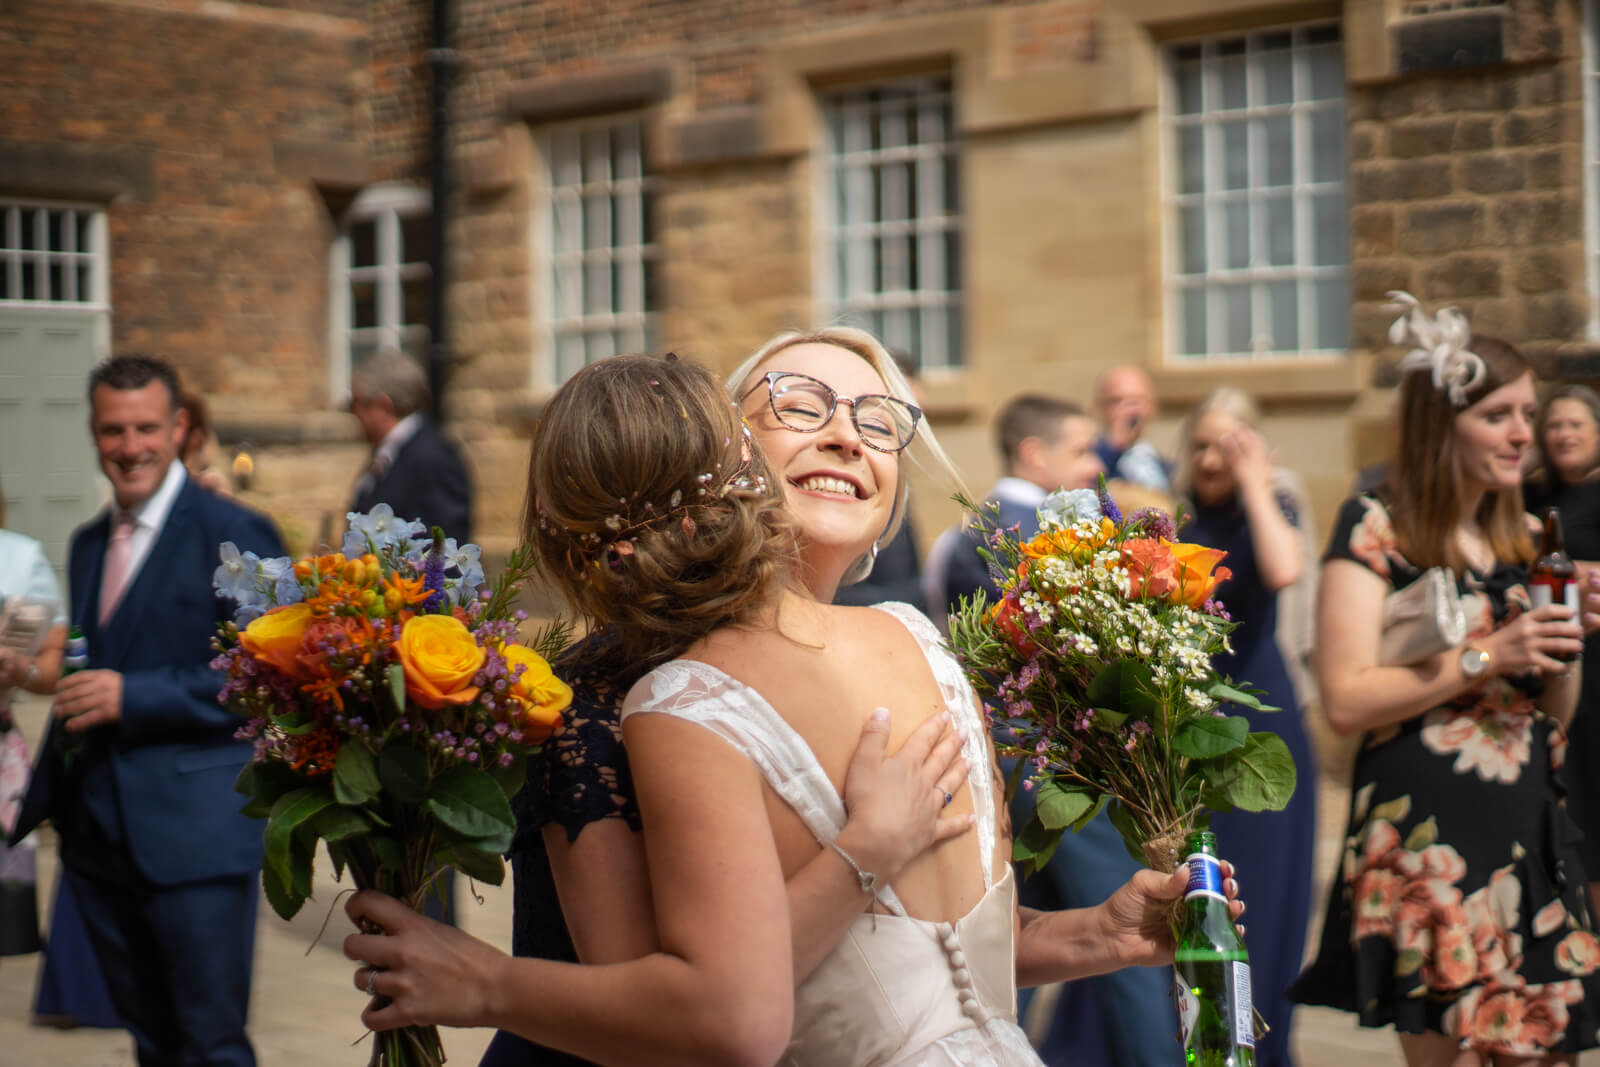 Bridesmaid hugs the bride with a big smile while both holding bouquets of colourful flowers